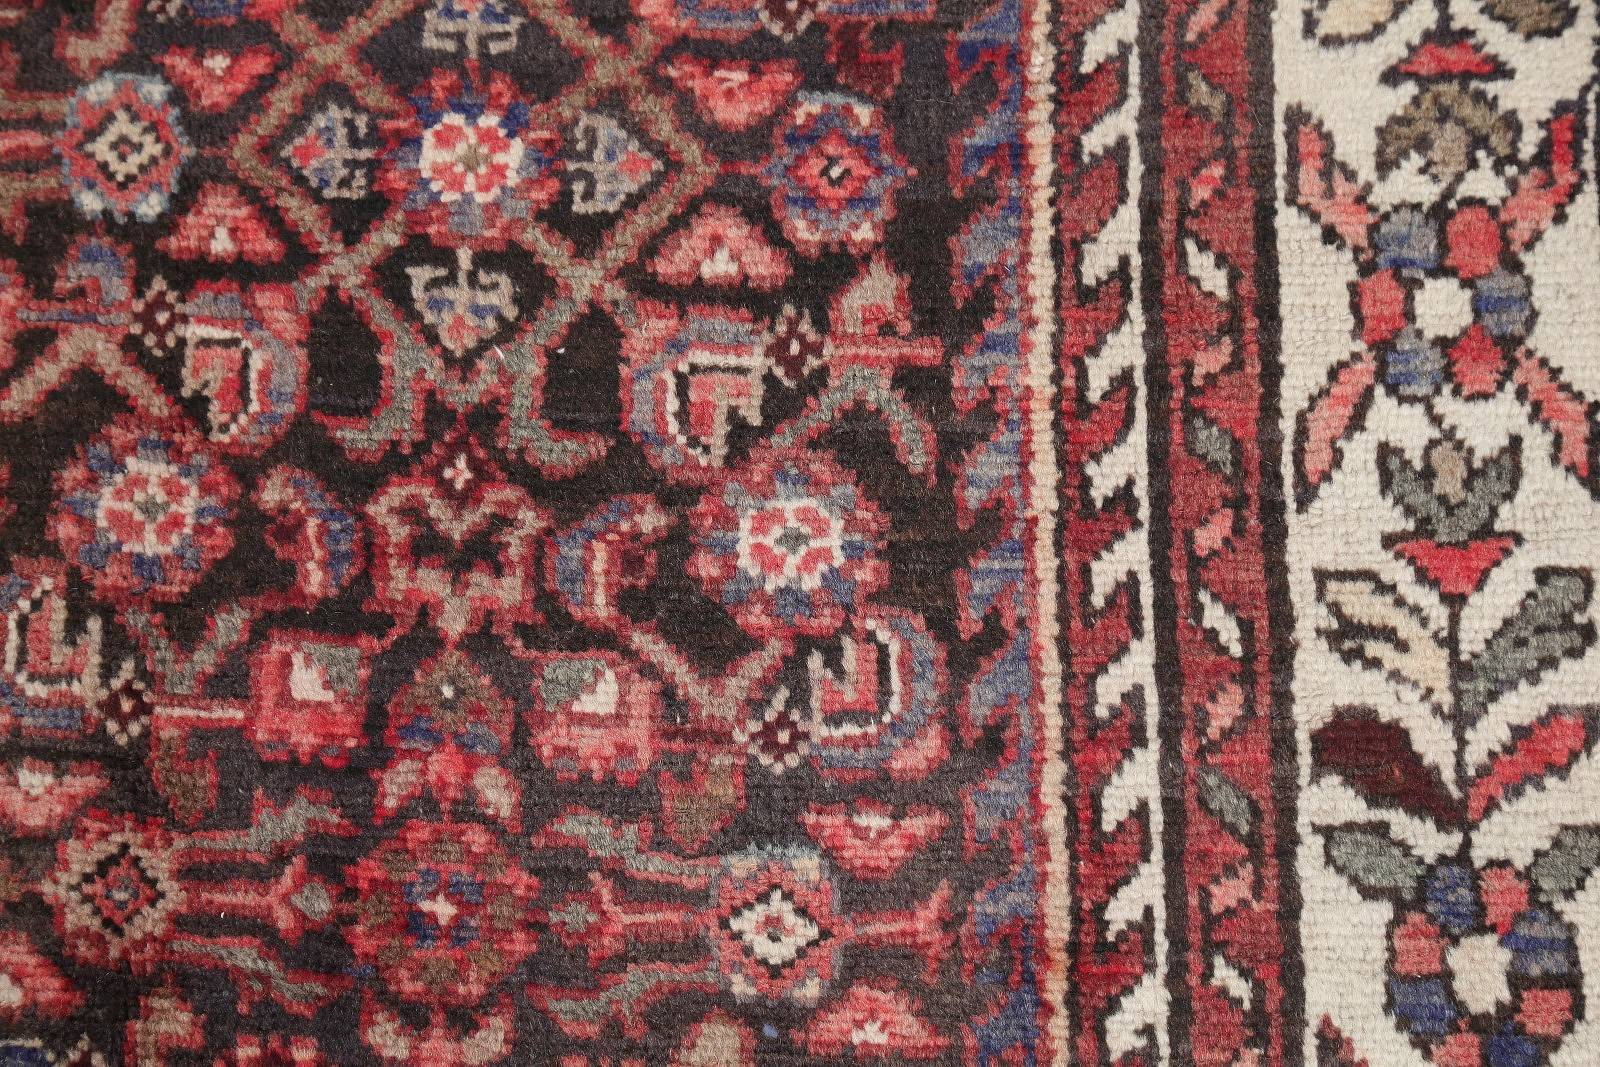 One-of-a-Kind Geometric Hamedan Persian Hand-Knotted 4x11 Wool Runner Rug